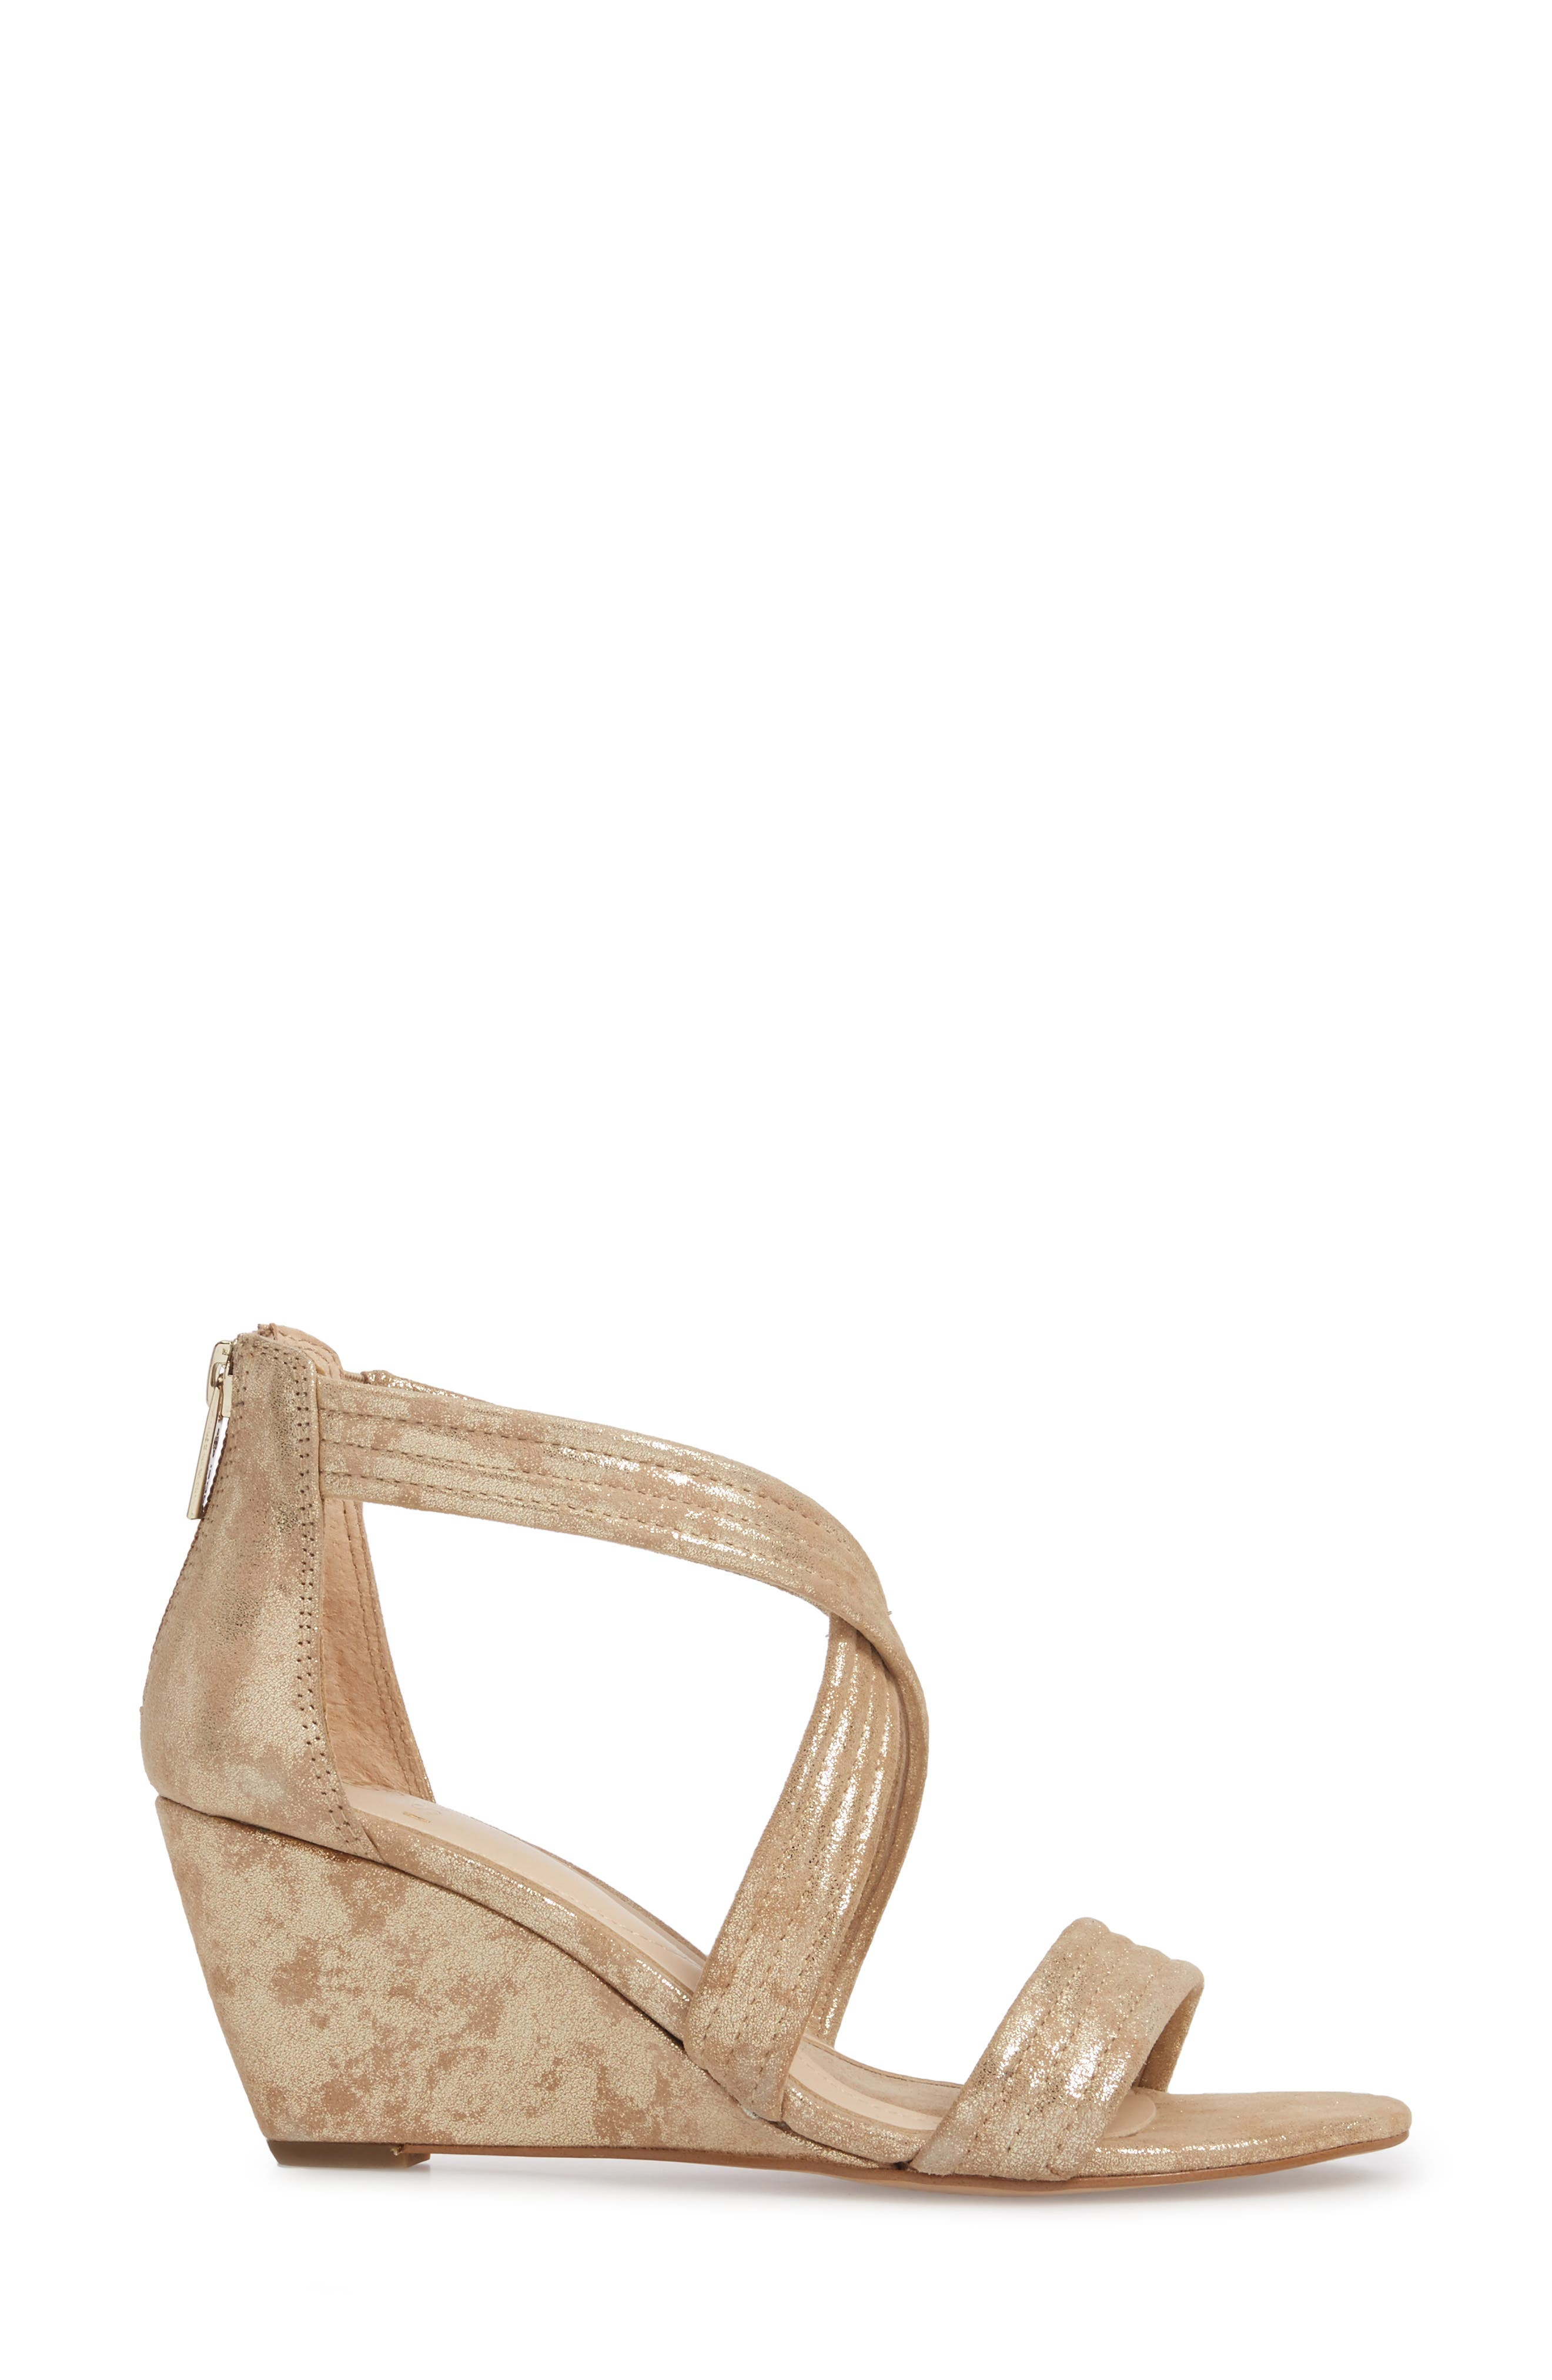 Fia Wedge Sandal,                             Alternate thumbnail 3, color,                             Platino Distressed Suede